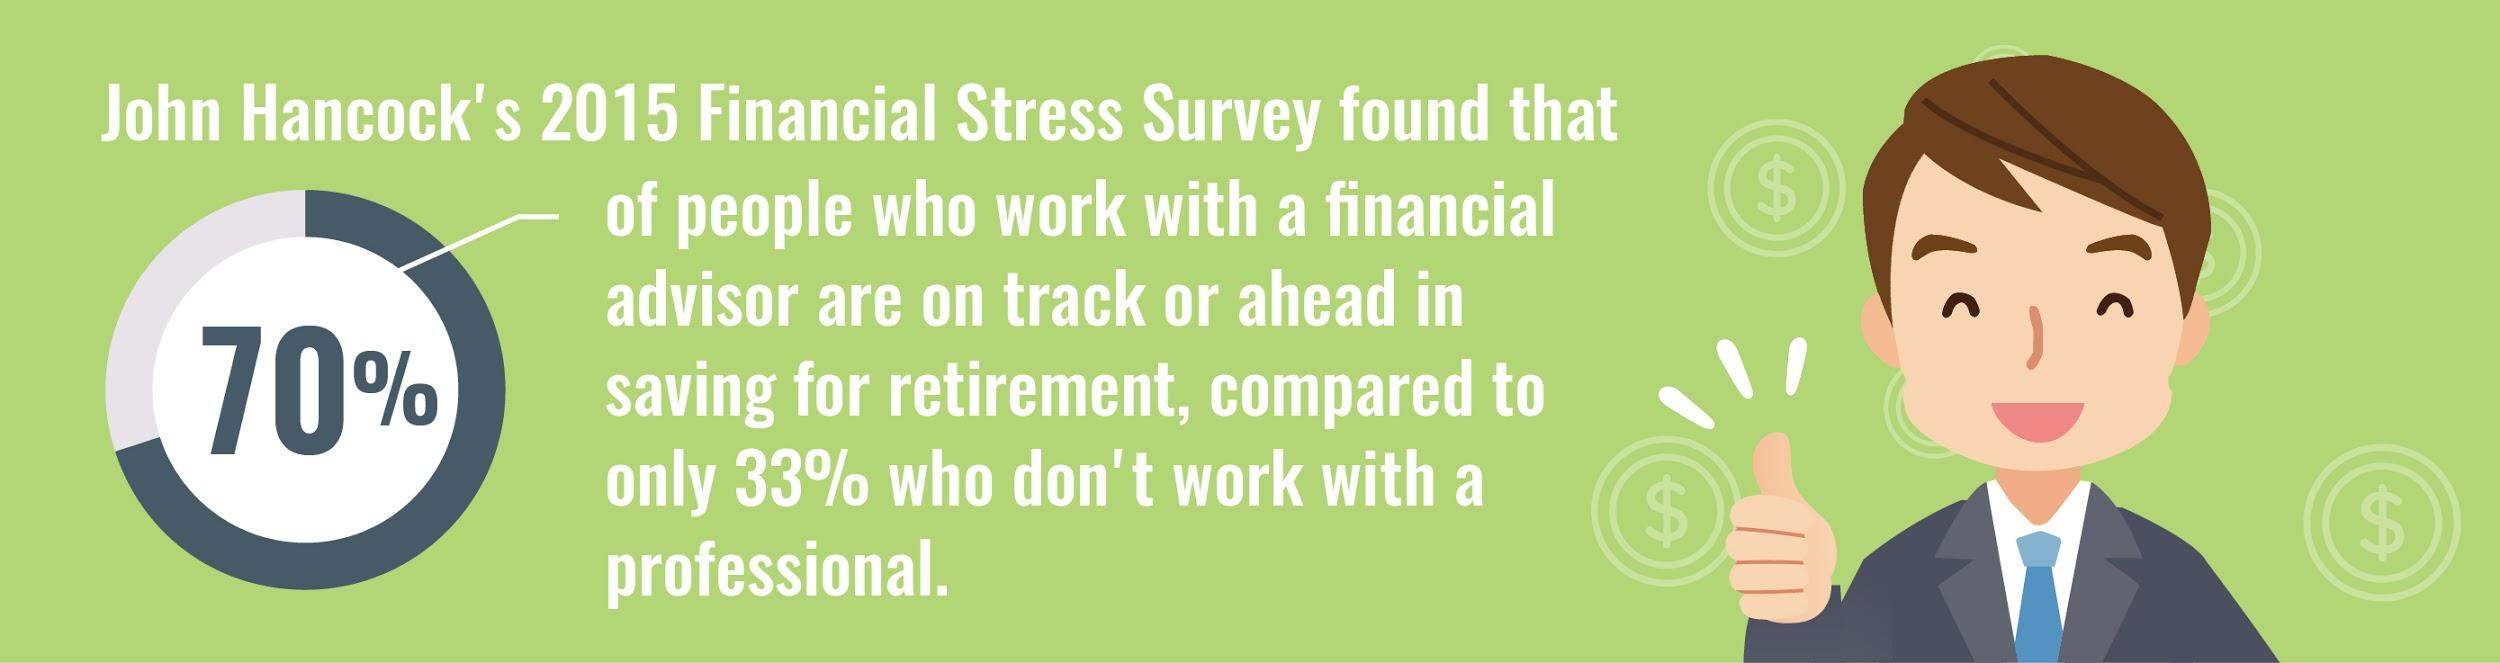 70 of people with a financial advisor are on track or better for retirement